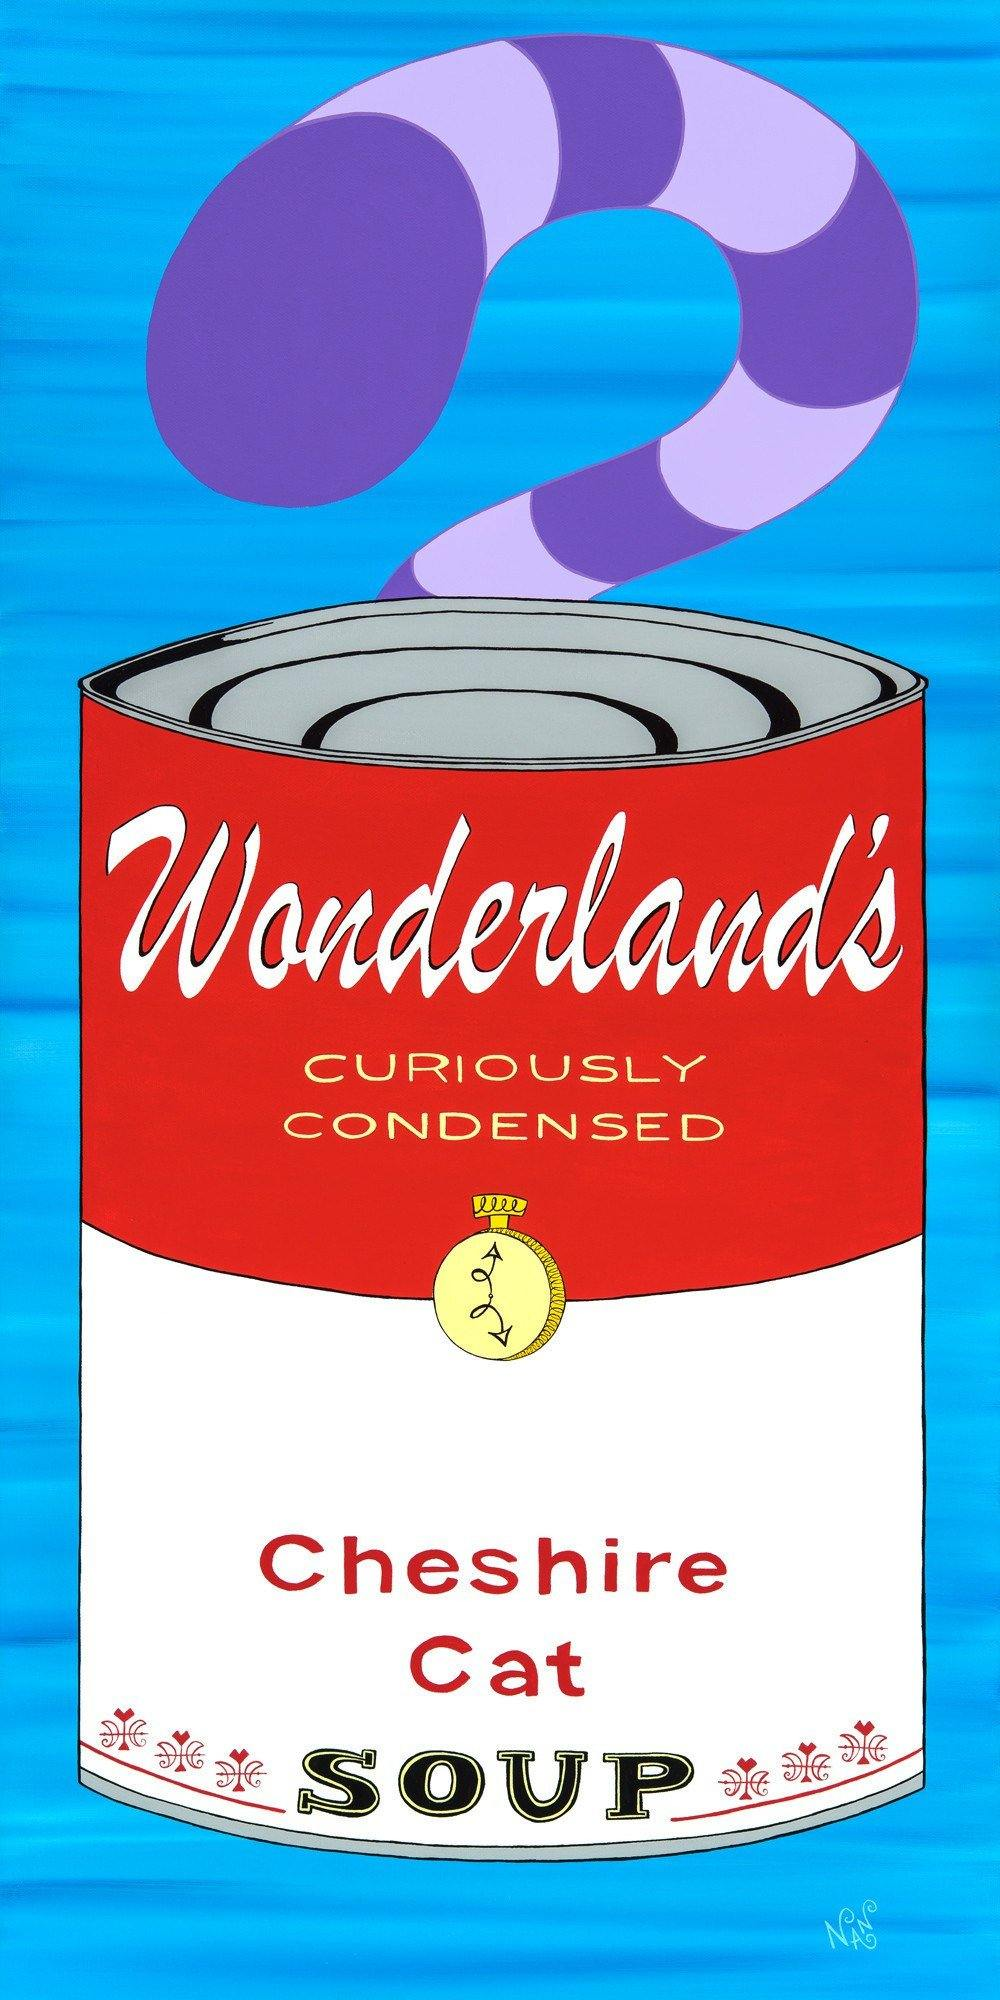 Cheshire Cat Wonderland Soup Can - Signed Prints | Fine Art and Limited Edition Prints | The Art Of Nan Coffey